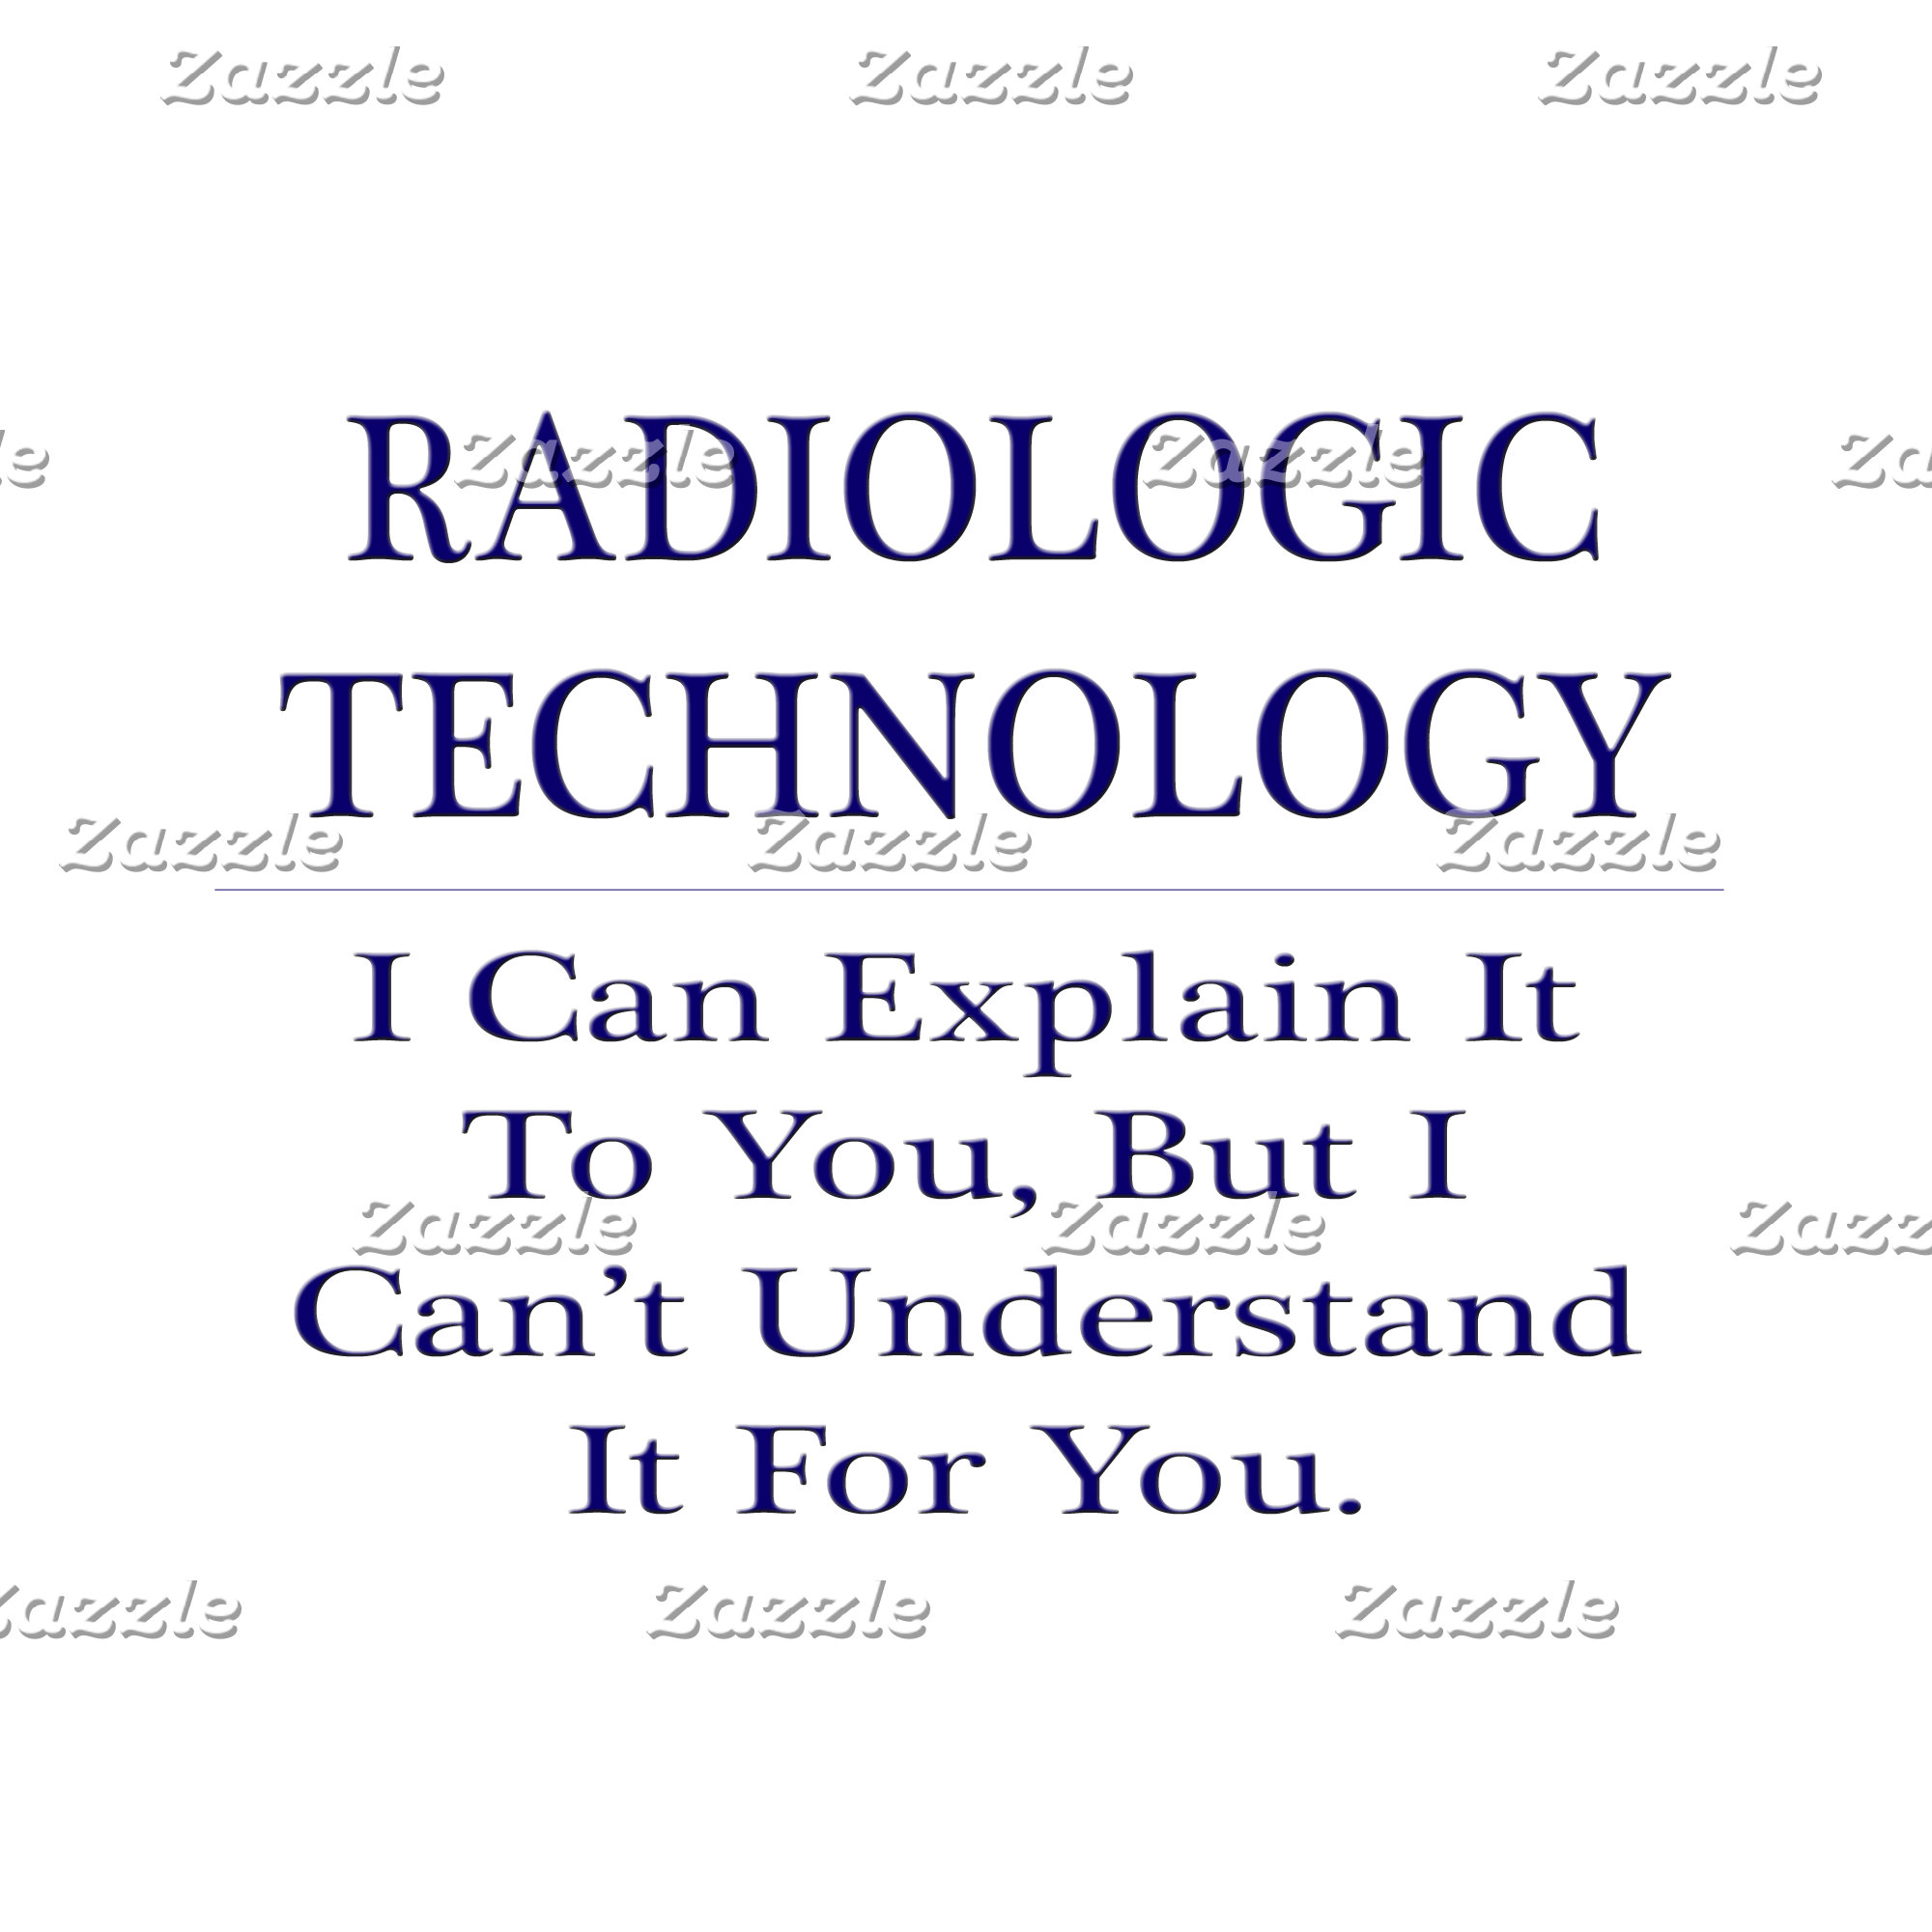 Radiologic Technology .. Explain Not Understand